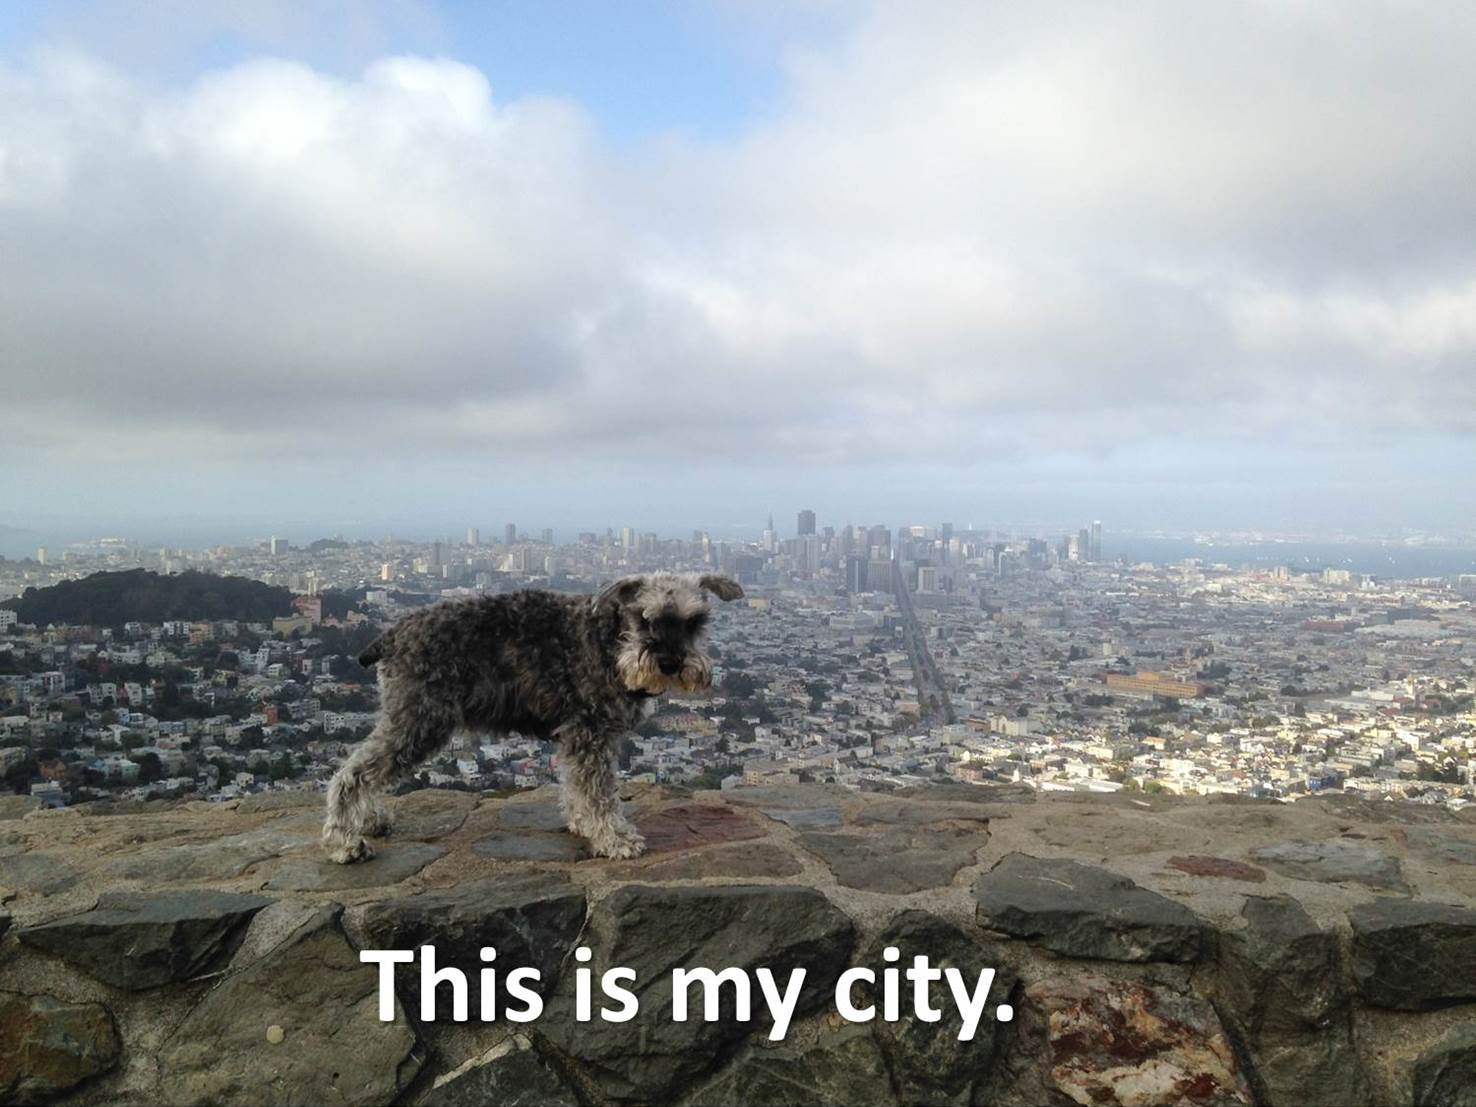 City Dog or Country Dog?